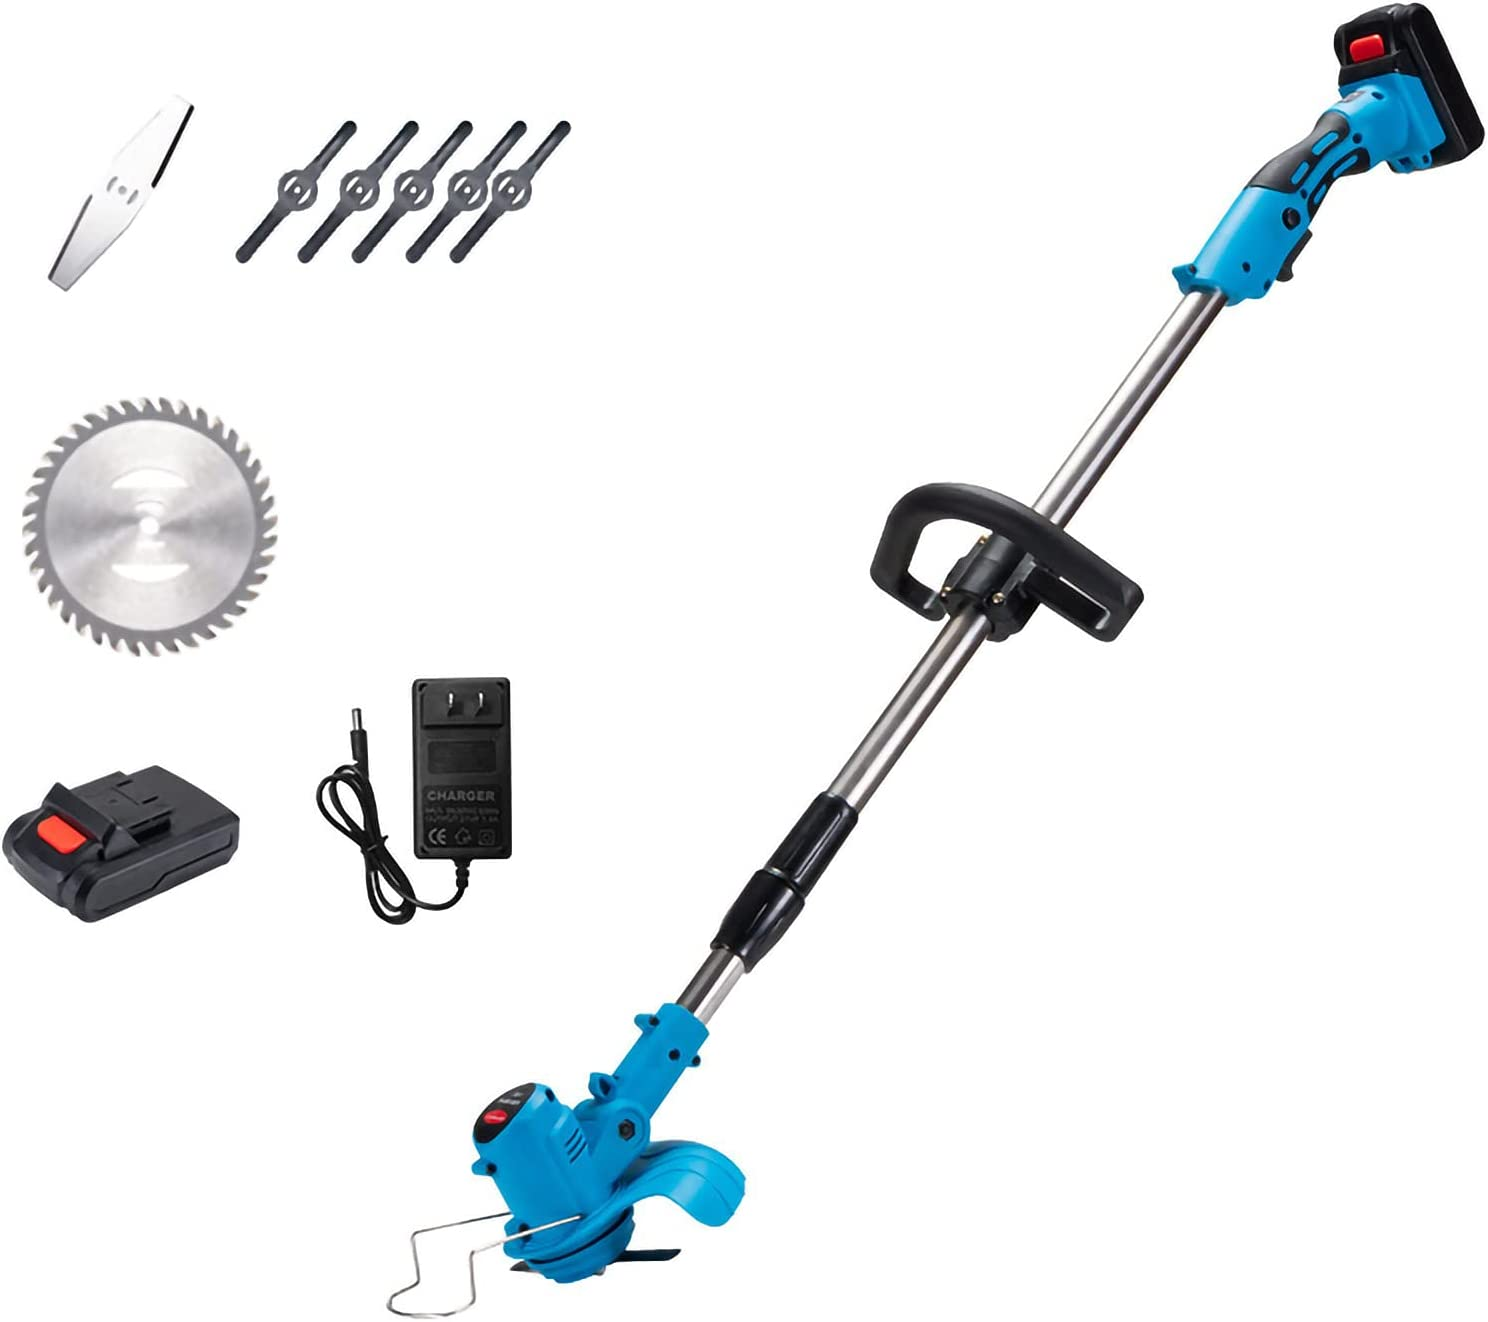 KHLRDK Max 73% OFF 21V Telescopic Electric Grass Trimmer Cordless Str Small excellence